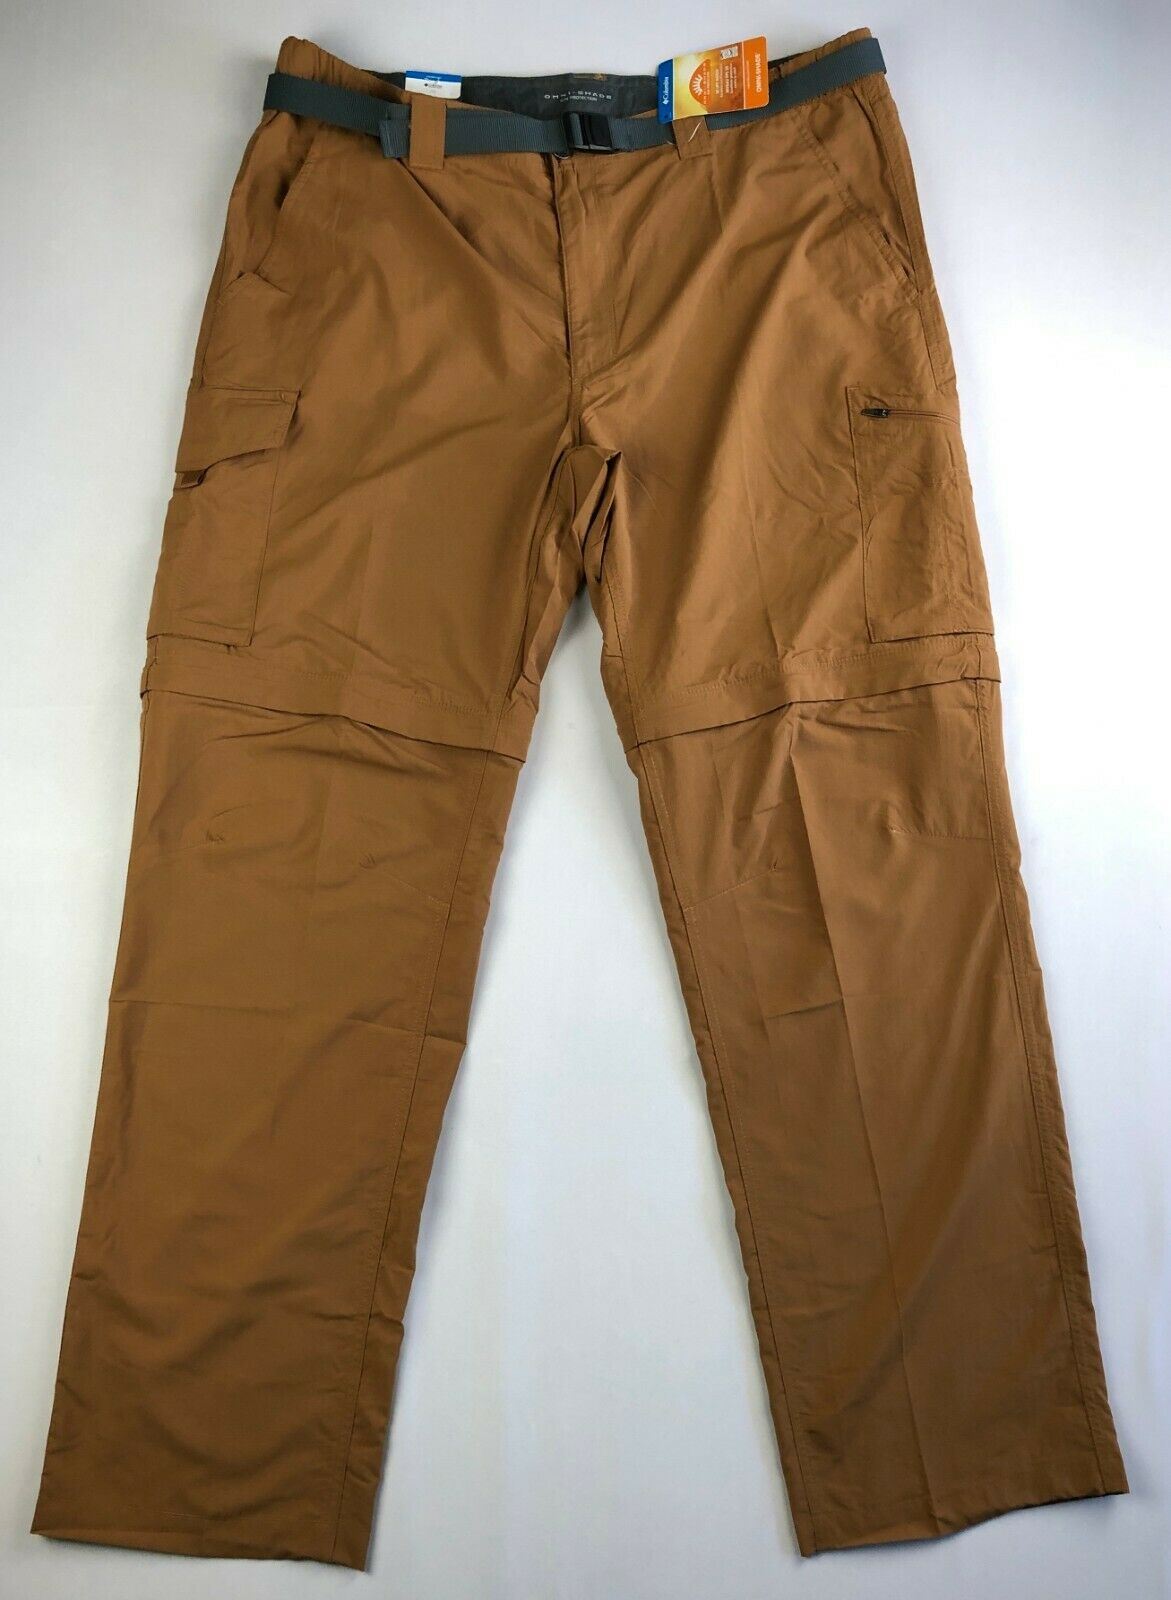 W38//L32 Walking Trousers Silver Ridge II Columbia Pantal/ón de Excursionismo Convertible para Hombre Marr/ón Tusk